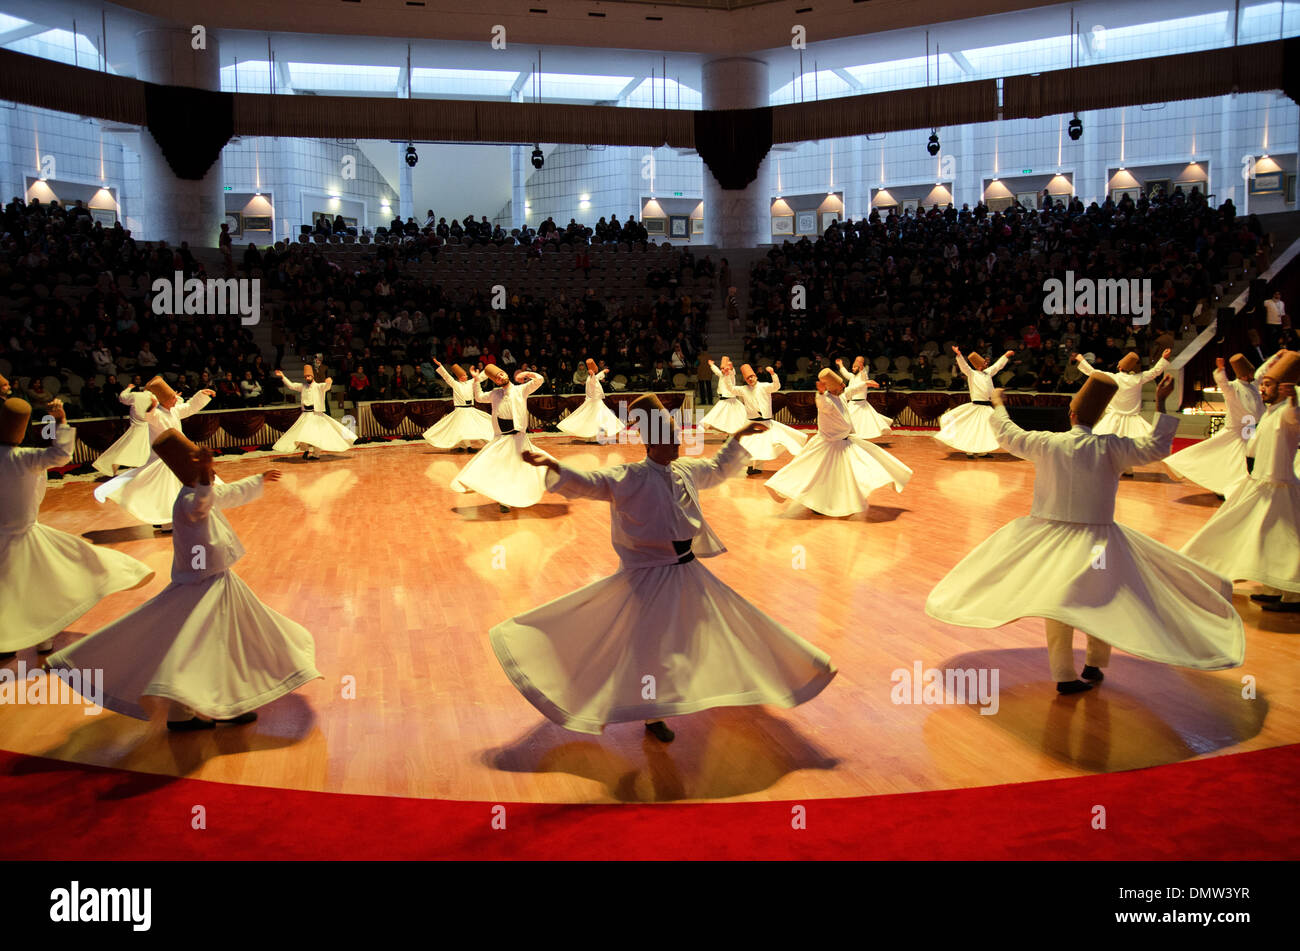 Konya, Turkey. 16th December 2013. The 740th anniversary of the death of the Sufi mystic Mevlana Jalaladdin Rumi was commemorated in Konya by the world renown dancers The Whirling Dervishes. Is celebrated between December 7- 17 Credit:  Oleksandr Rupeta/Alamy Live News - Stock Image